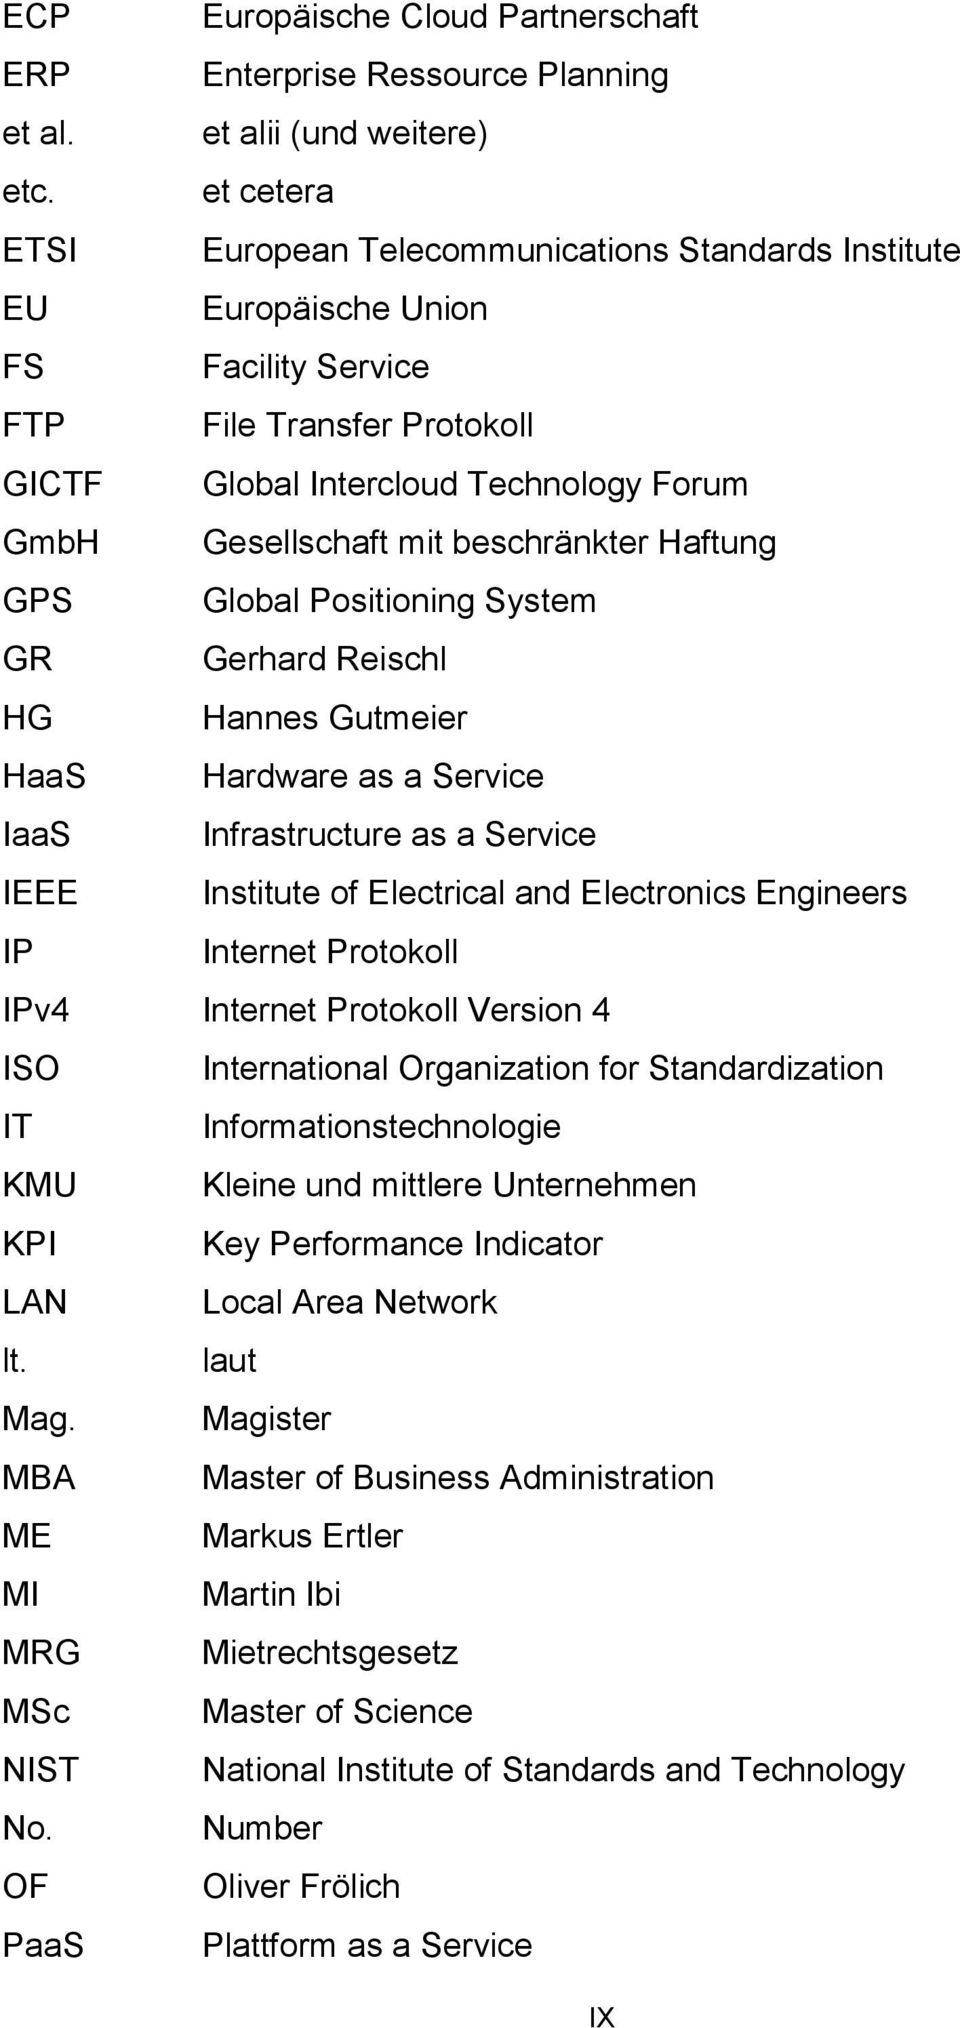 beschränkter Haftung GPS Global Positioning System GR Gerhard Reischl HG Hannes Gutmeier HaaS Hardware as a Service IaaS Infrastructure as a Service IEEE Institute of Electrical and Electronics